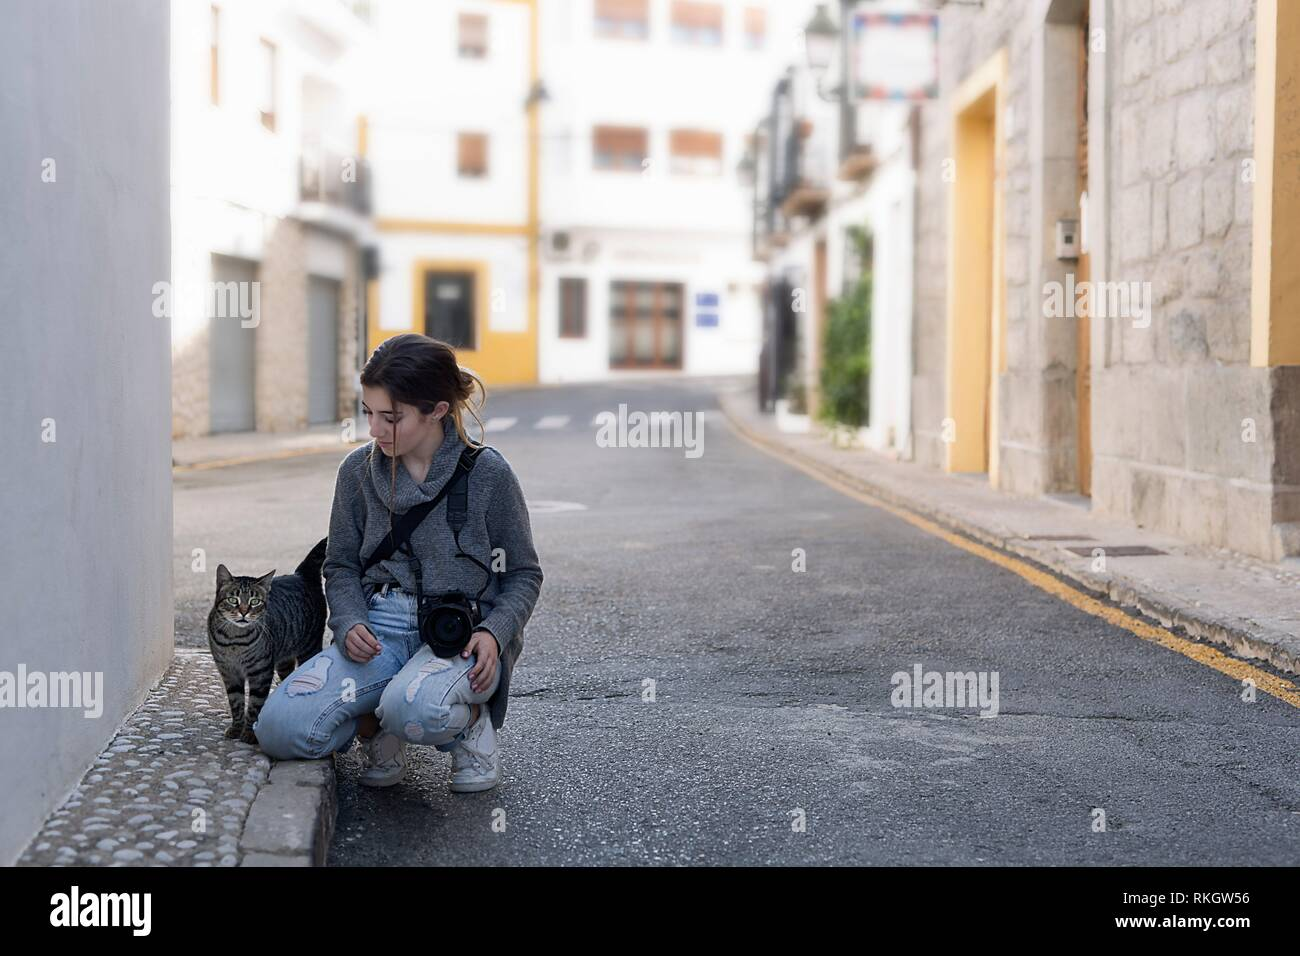 Teenage girl with her photo camera greeting a street cat in the town of Altea, in the province of Alicante, Spain. - Stock Image